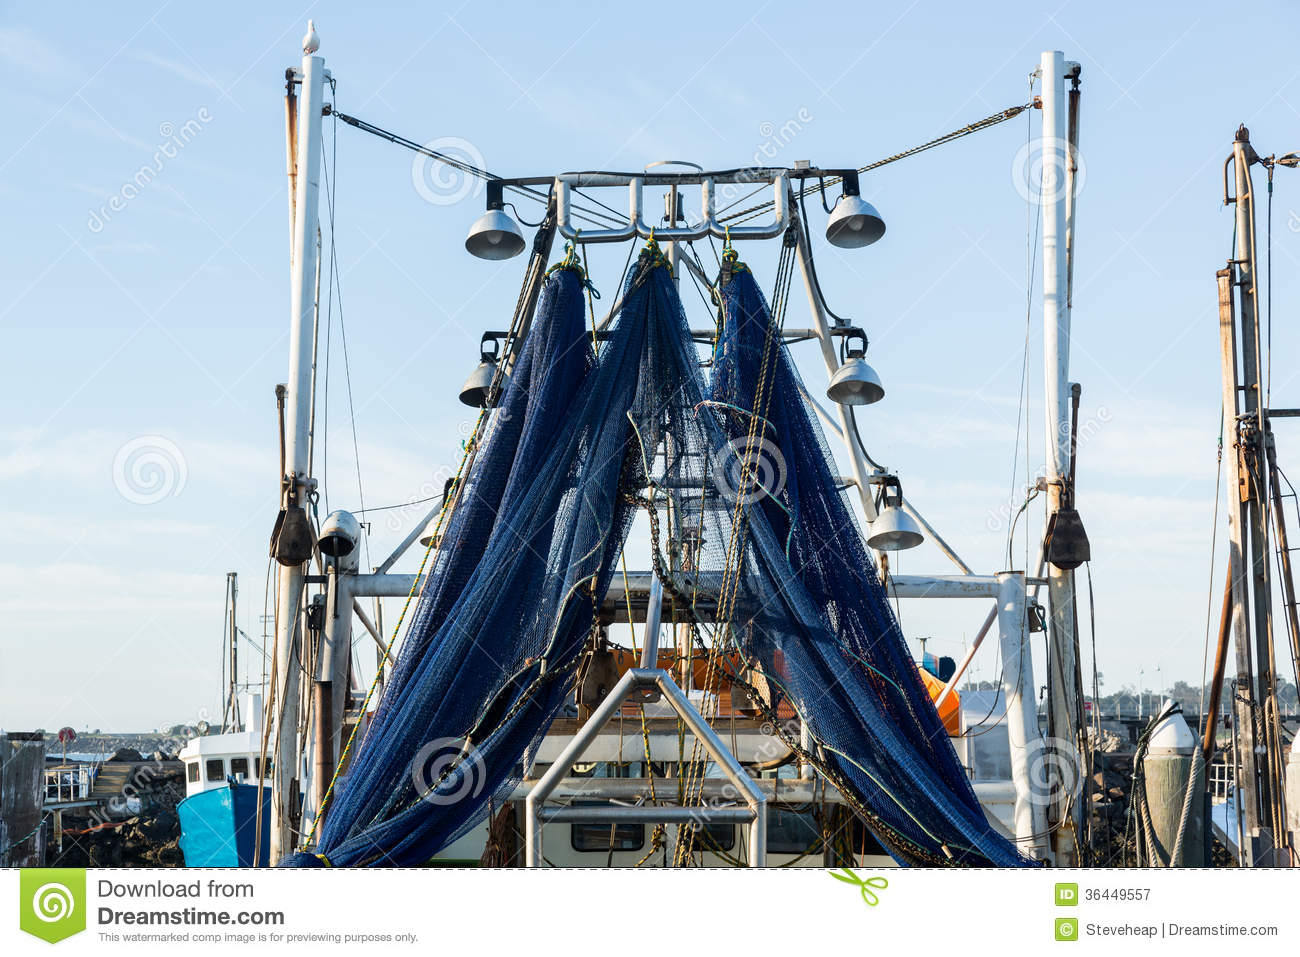 Blue fishing nets or trawl hanging from ship stock image for How to ship fish